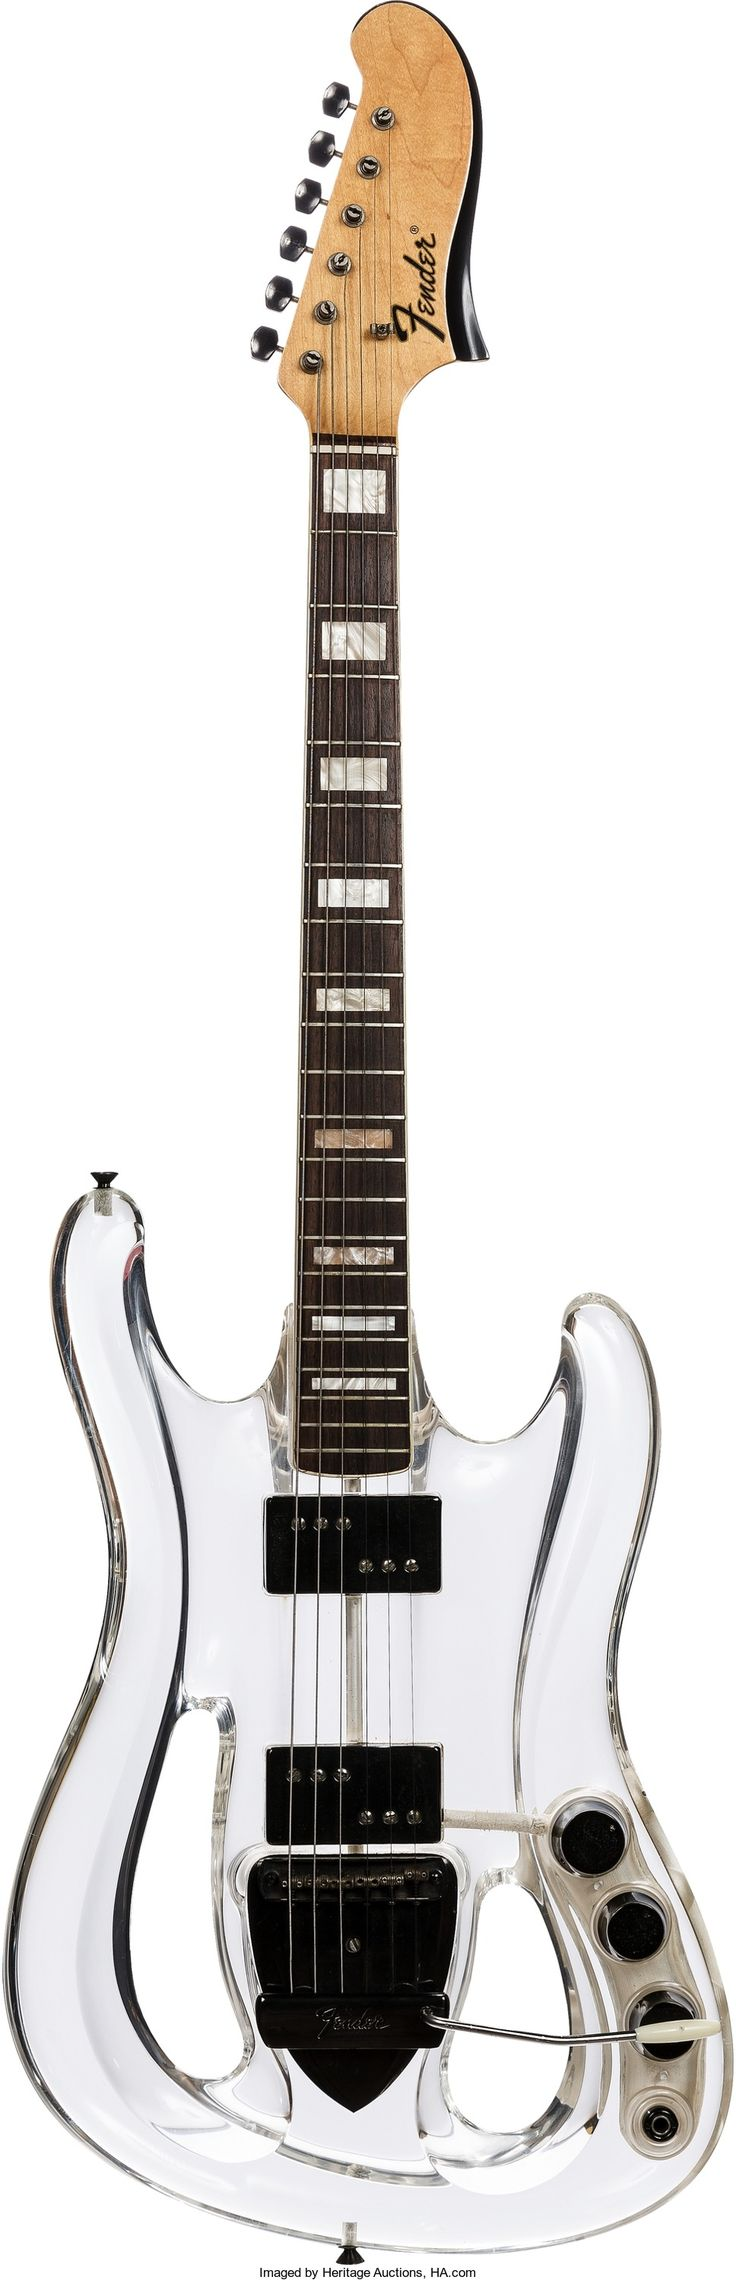 544 Best Famous Guitars Of The Famous Owners    Images On